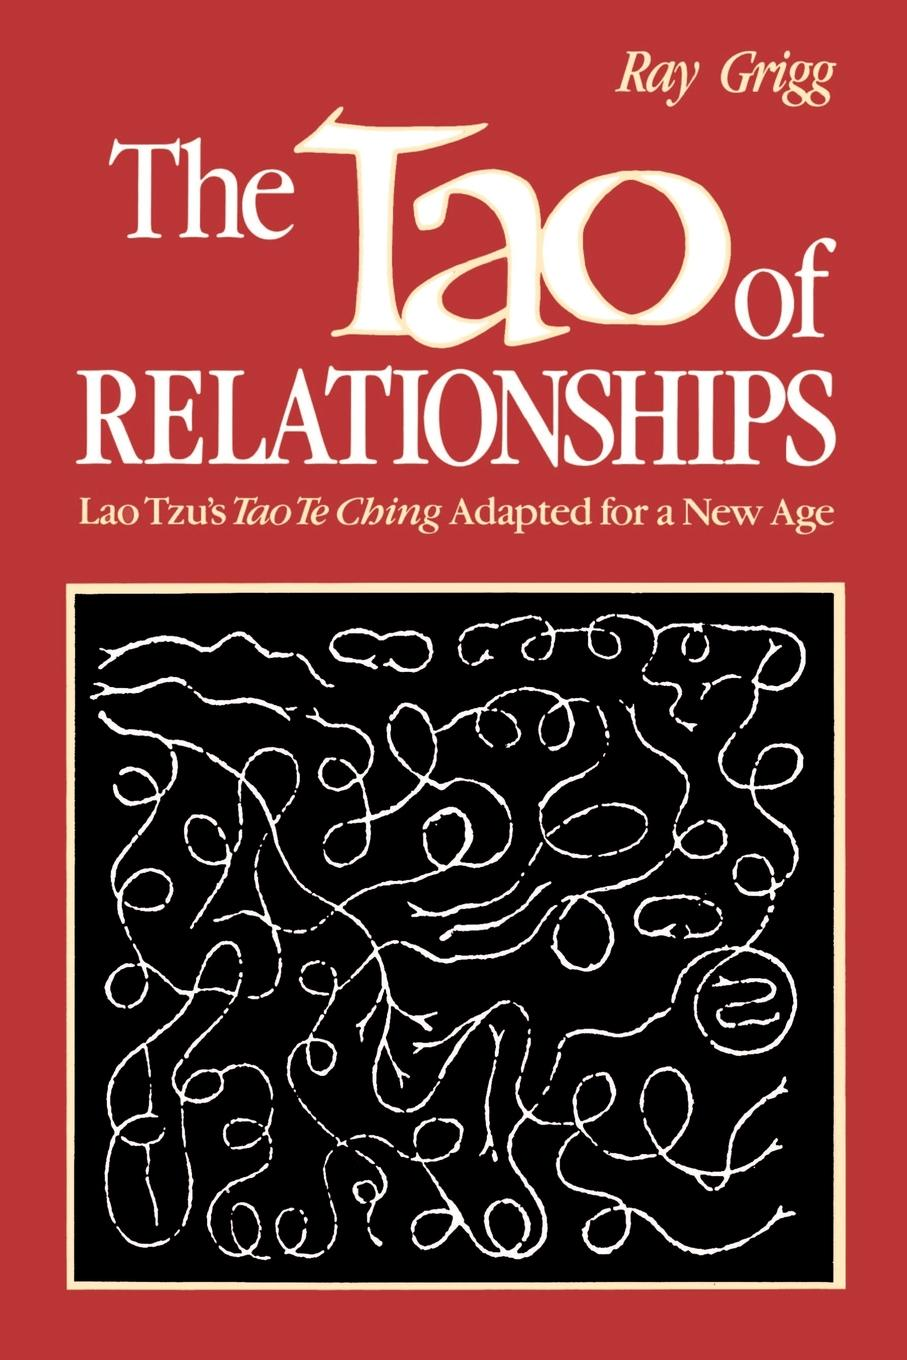 The Tao of Relationships By: Ray Grigg